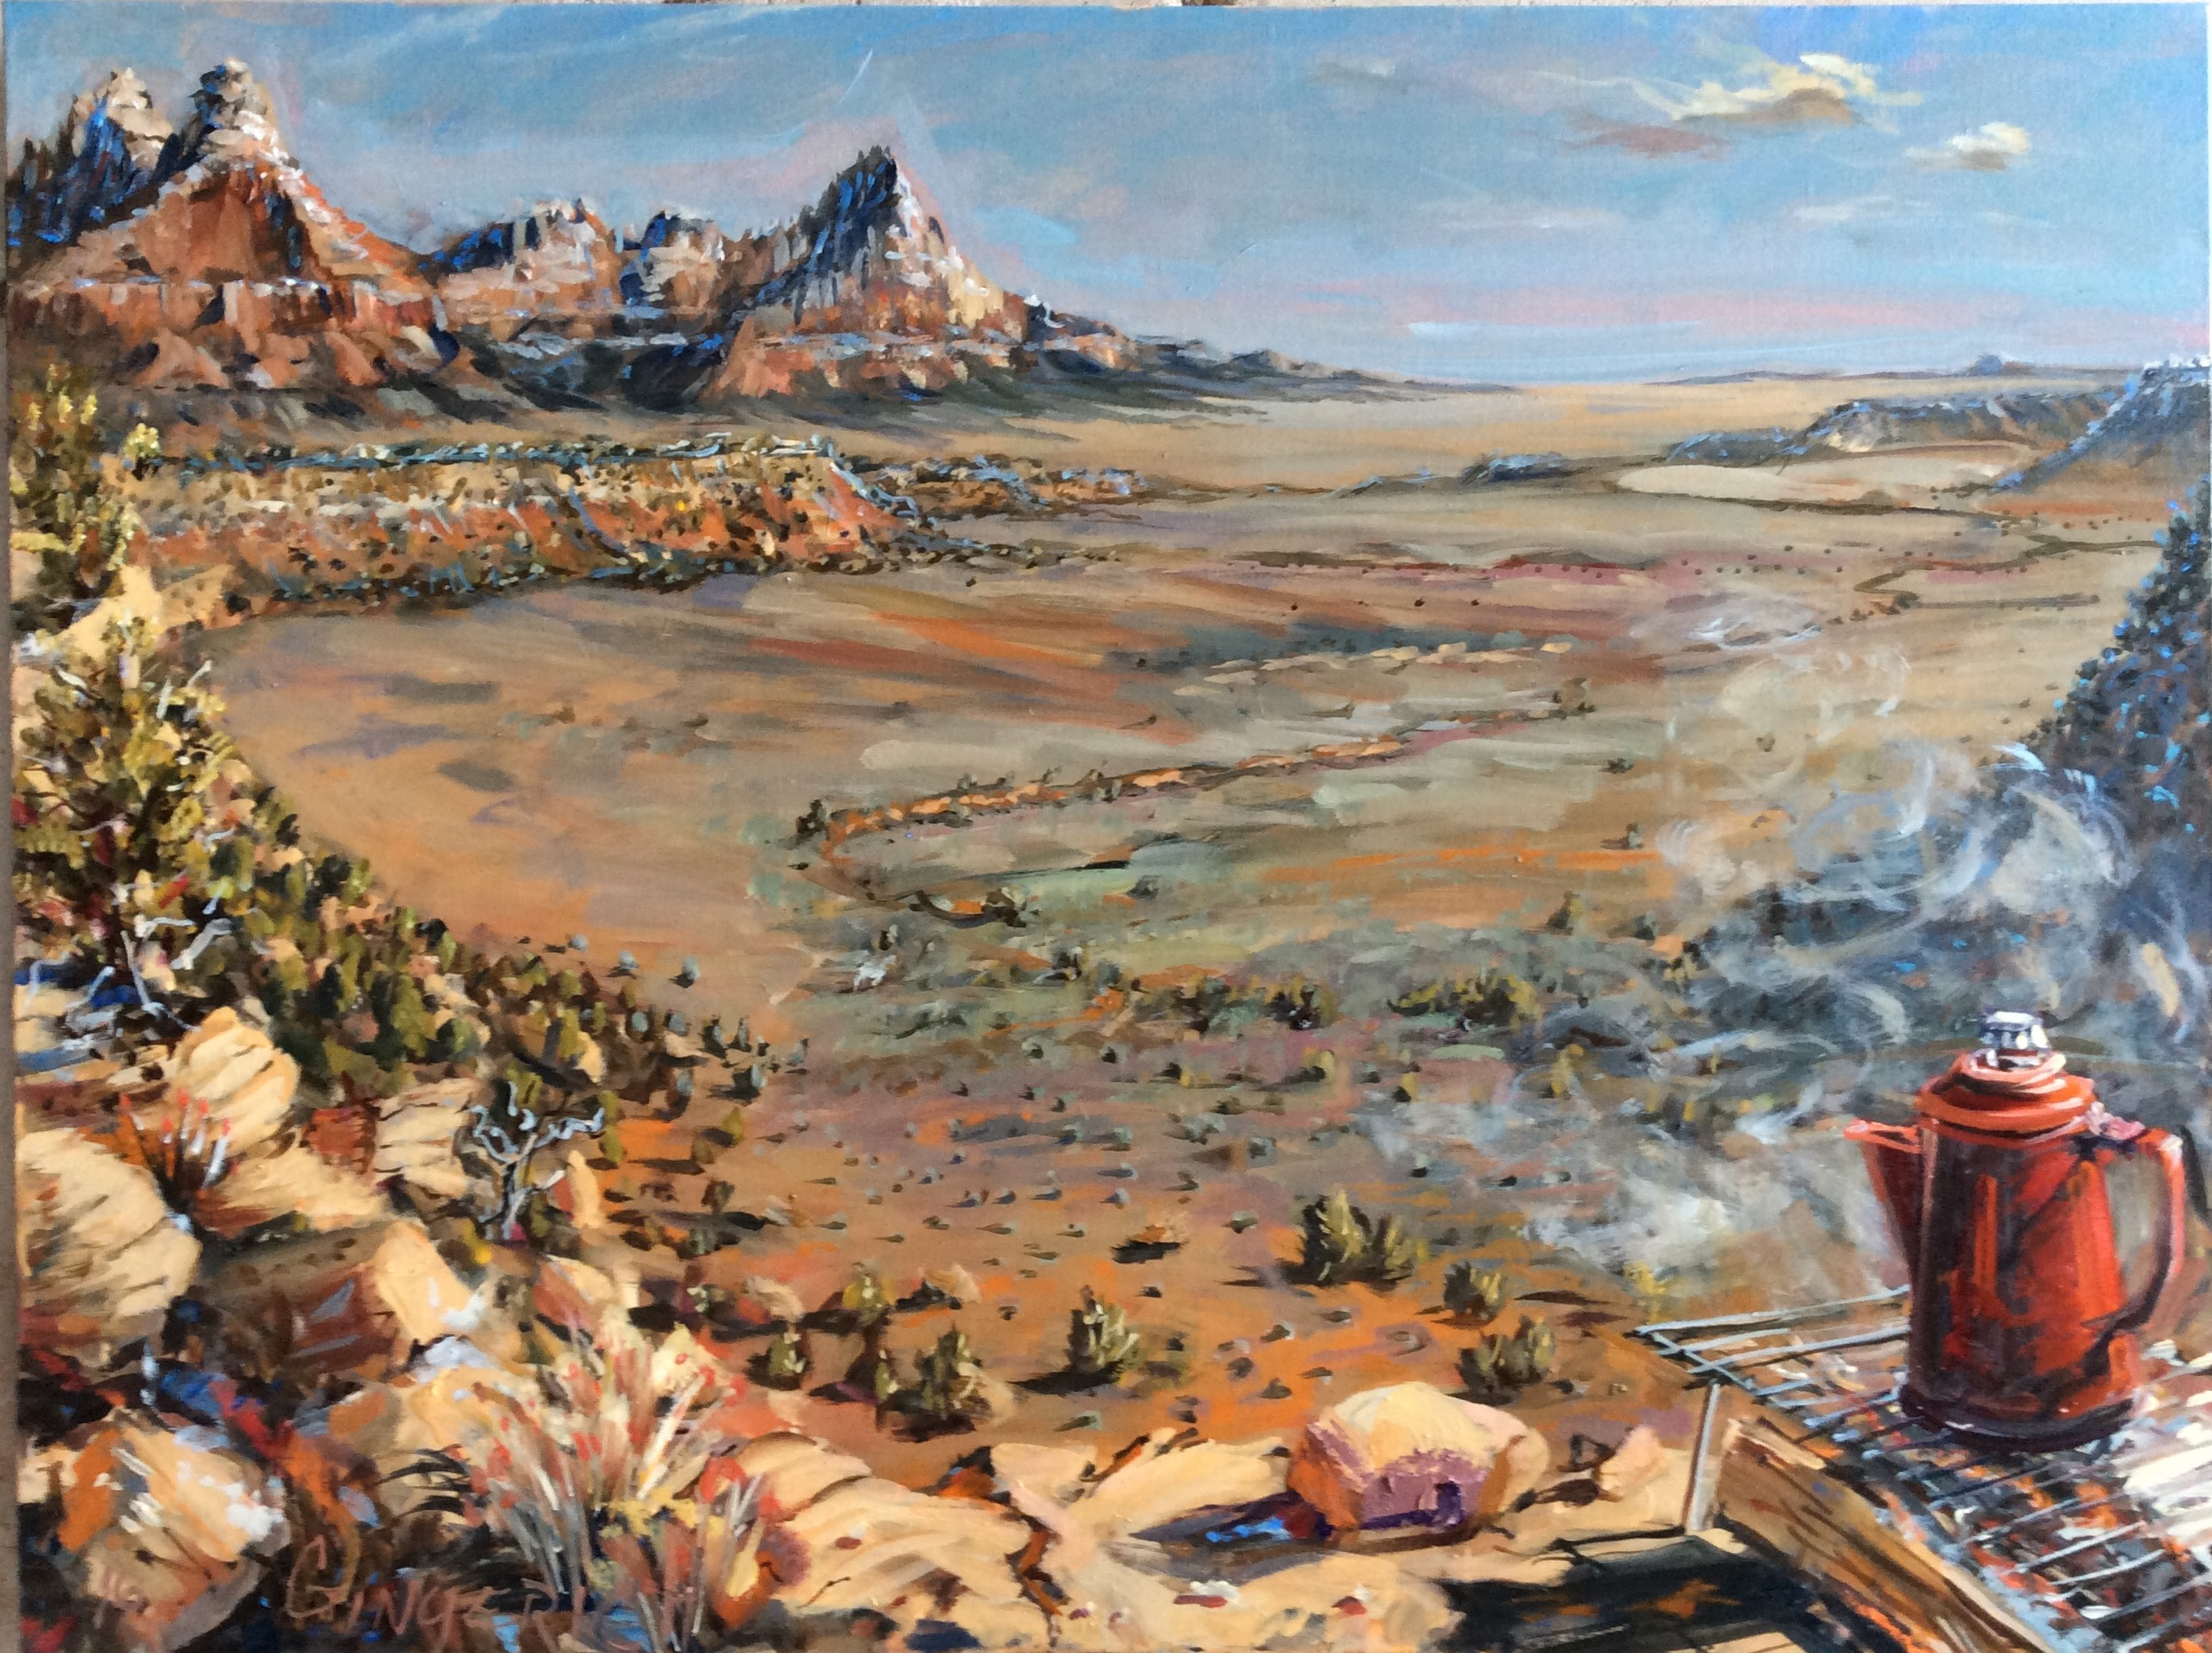 Up on Gooseberry Mesa  30 x 40 inches, oil on canvas